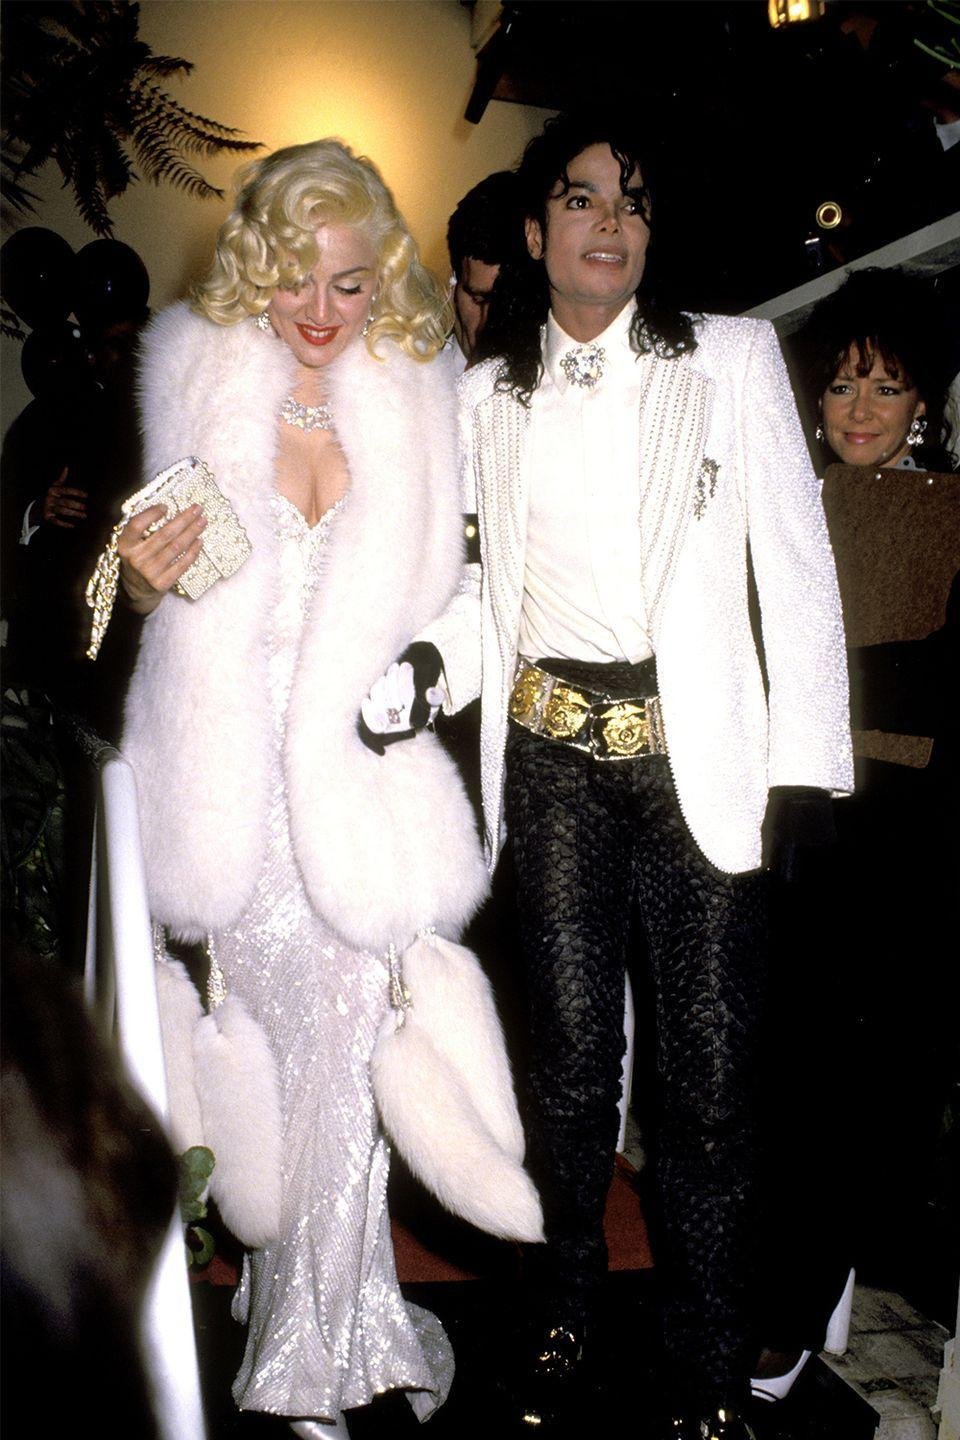 """<p>Madonna confused the world when she brought Michael Jackson as her date to the 1991 Academy Awards. The two attended the after parties together, and were even seen out on a dinner date a few days later. At the time, people were convinced it was <a href=""""https://www.buzzfeed.com/briangalindo/remember-when-madonna-michael-jackson-dated?utm_term=.vie1kLQaZ#.mv1NR1vQD"""" rel=""""nofollow noopener"""" target=""""_blank"""" data-ylk=""""slk:a publicity stunt"""" class=""""link rapid-noclick-resp"""">a publicity stunt</a> for Madonna's documentary, """"Truth or Dare."""" But the Material Girl certainly considered it a date, and even <a href=""""https://www.instagram.com/p/Bf6ipX1hmxl/?utm_source=ig_embed"""" rel=""""nofollow noopener"""" target=""""_blank"""" data-ylk=""""slk:posted a throwback pic on her Instagram"""" class=""""link rapid-noclick-resp"""">posted a throwback pic on her Instagram</a> recently.</p>"""